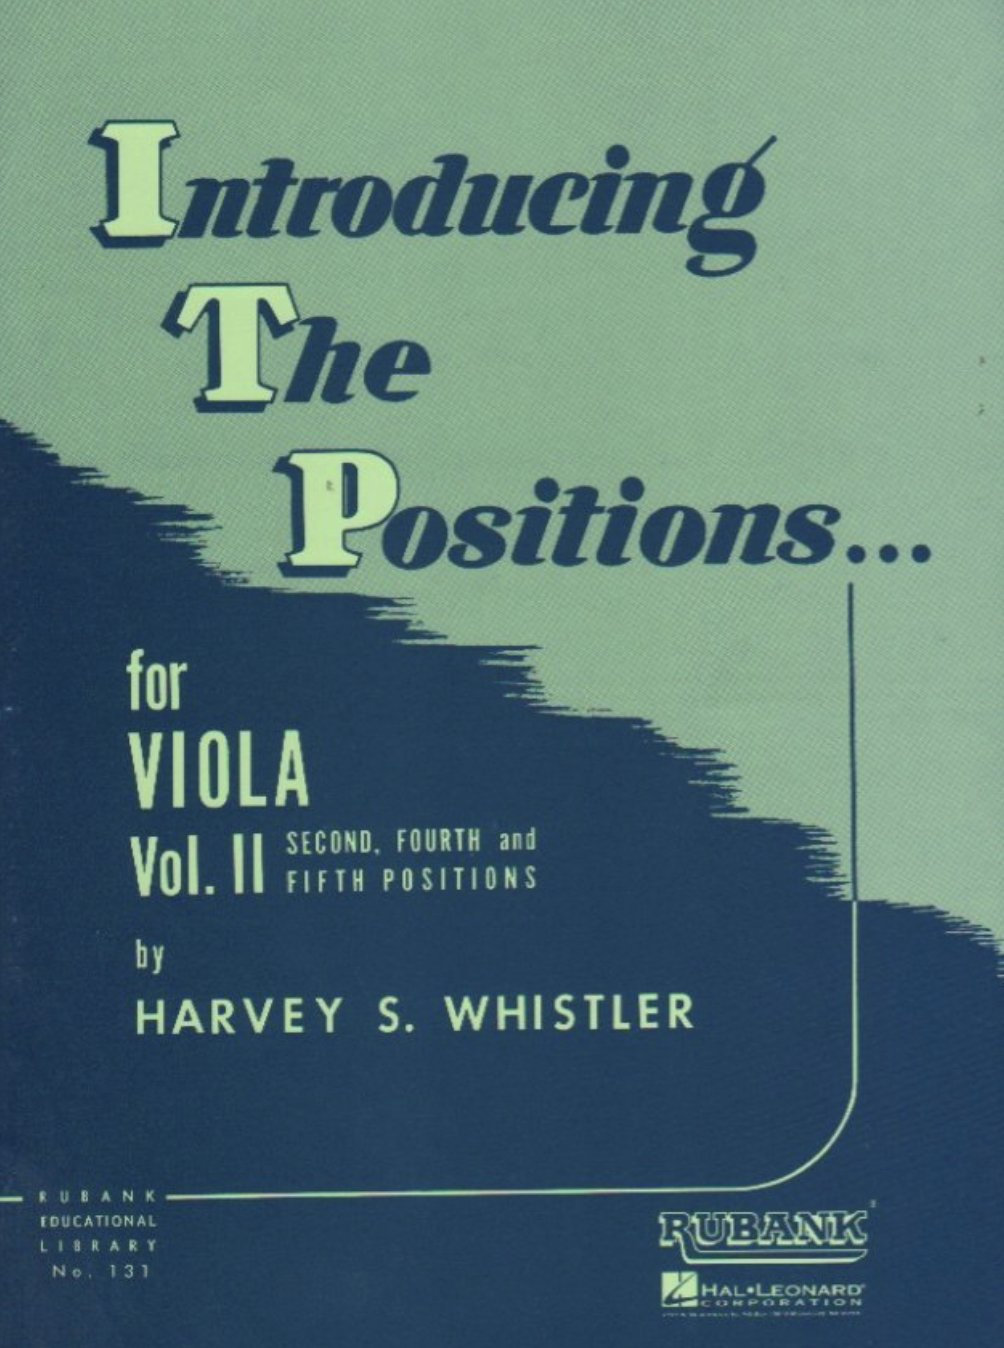 Introducing the Positions for Viola Vol 2 - Whistler - Rubank